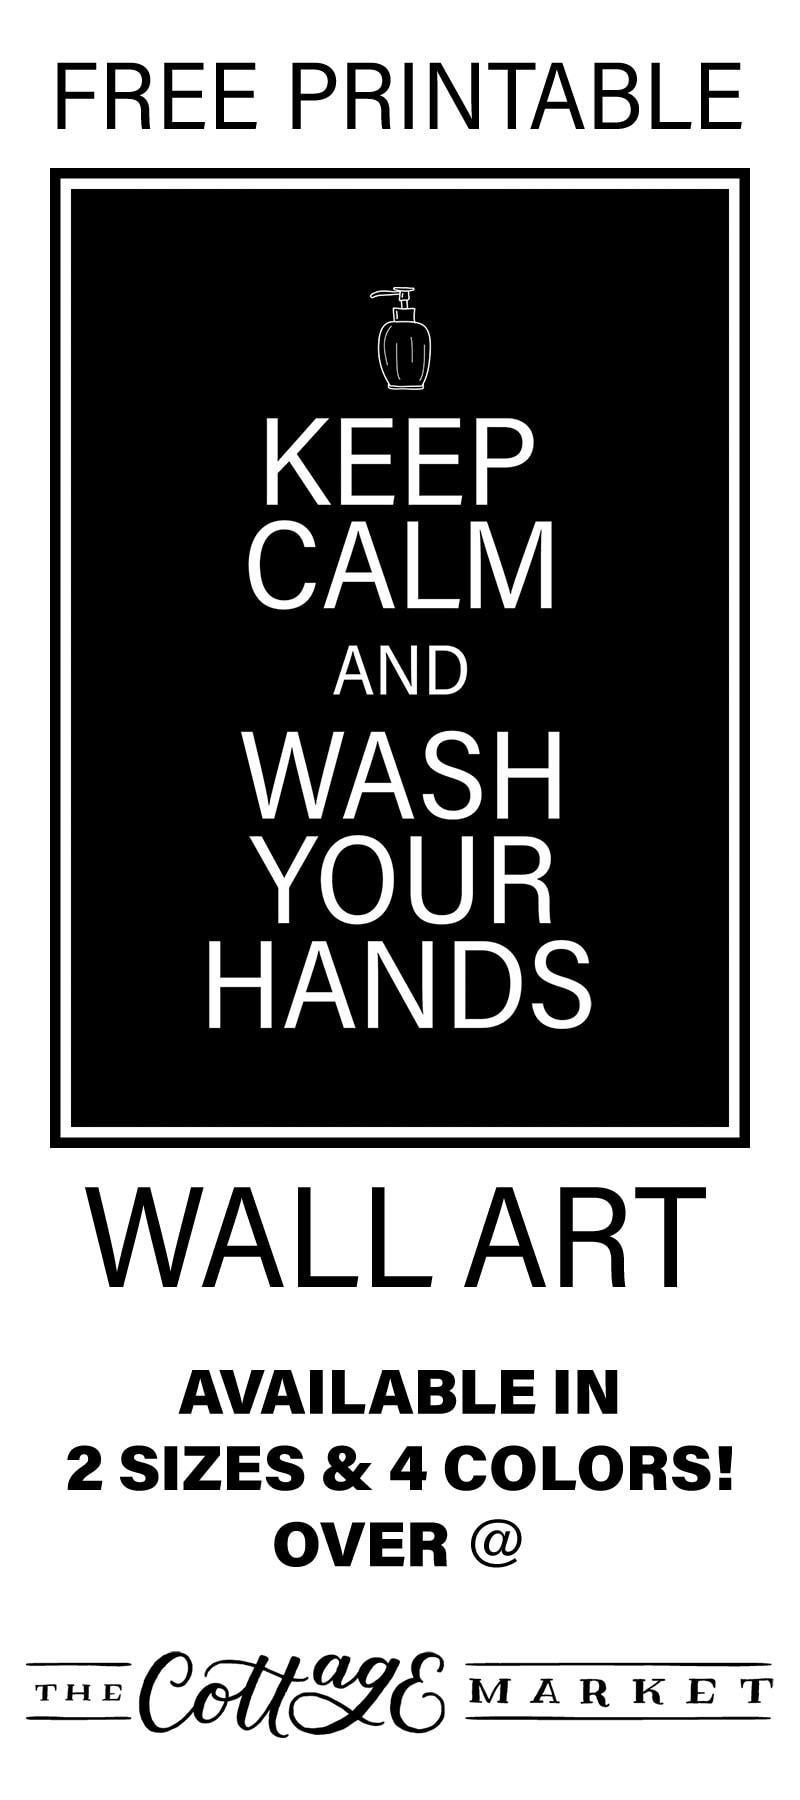 This Free Printable Keep Calm and Wash Your Hands Wall Art will be a fun reminder to Family and Friends to stop and wash their hands!  A great way to stop the spread of germs!